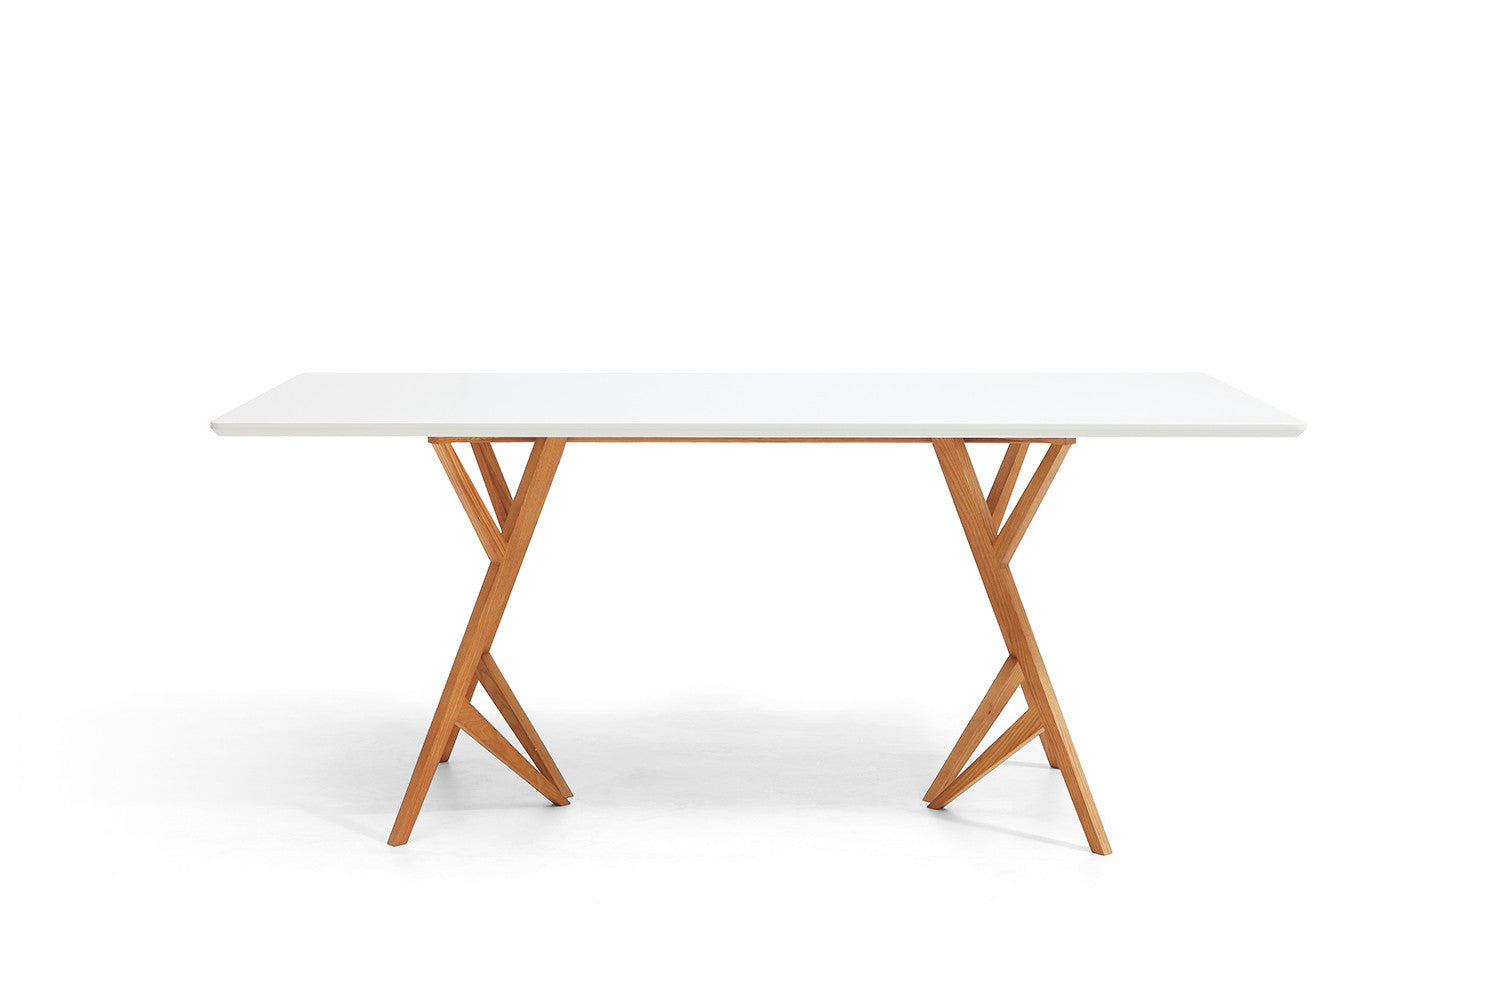 Table de salle manger design scandinave vispa dewarens for Table de salle a manger blanche